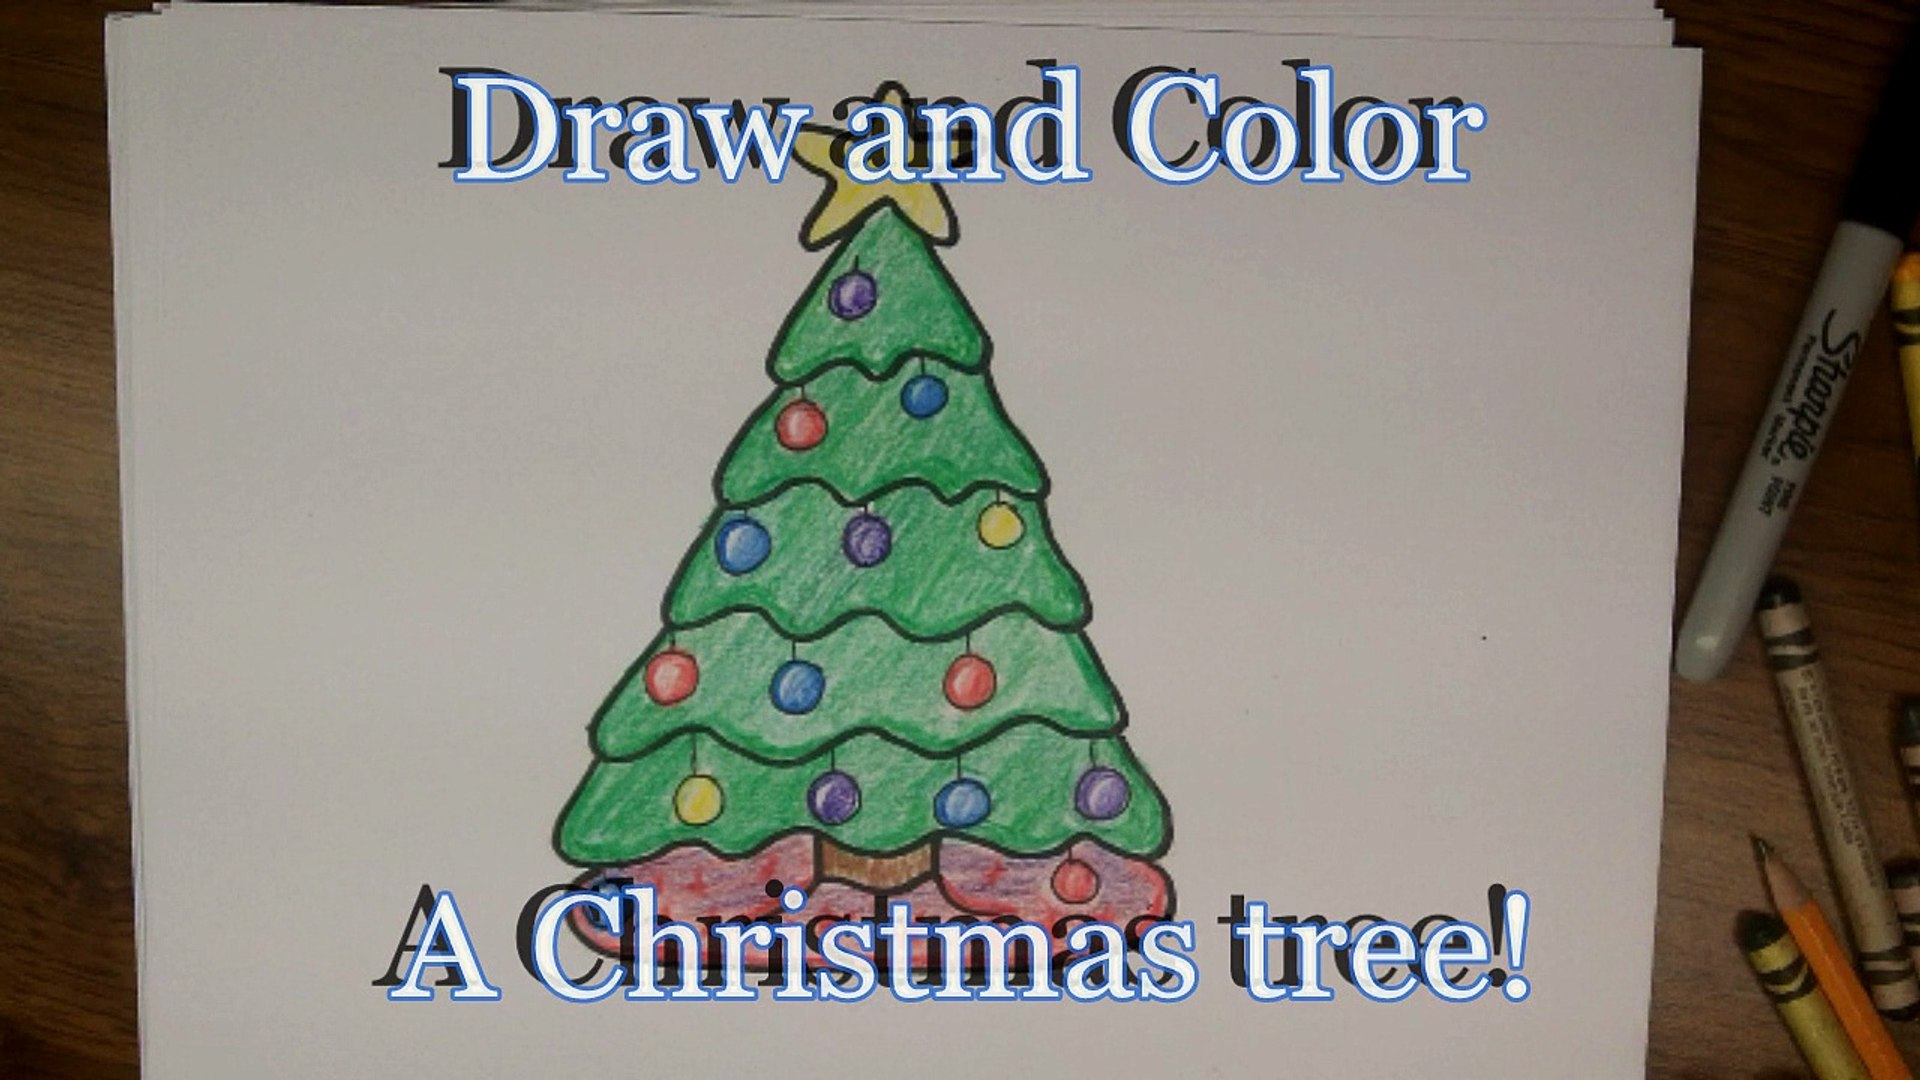 How To Draw A Cartoon Christmas Tree Easy Tutorial For Kids Video Dailymotion Stay tooned for more free drawing lessons by: dailymotion